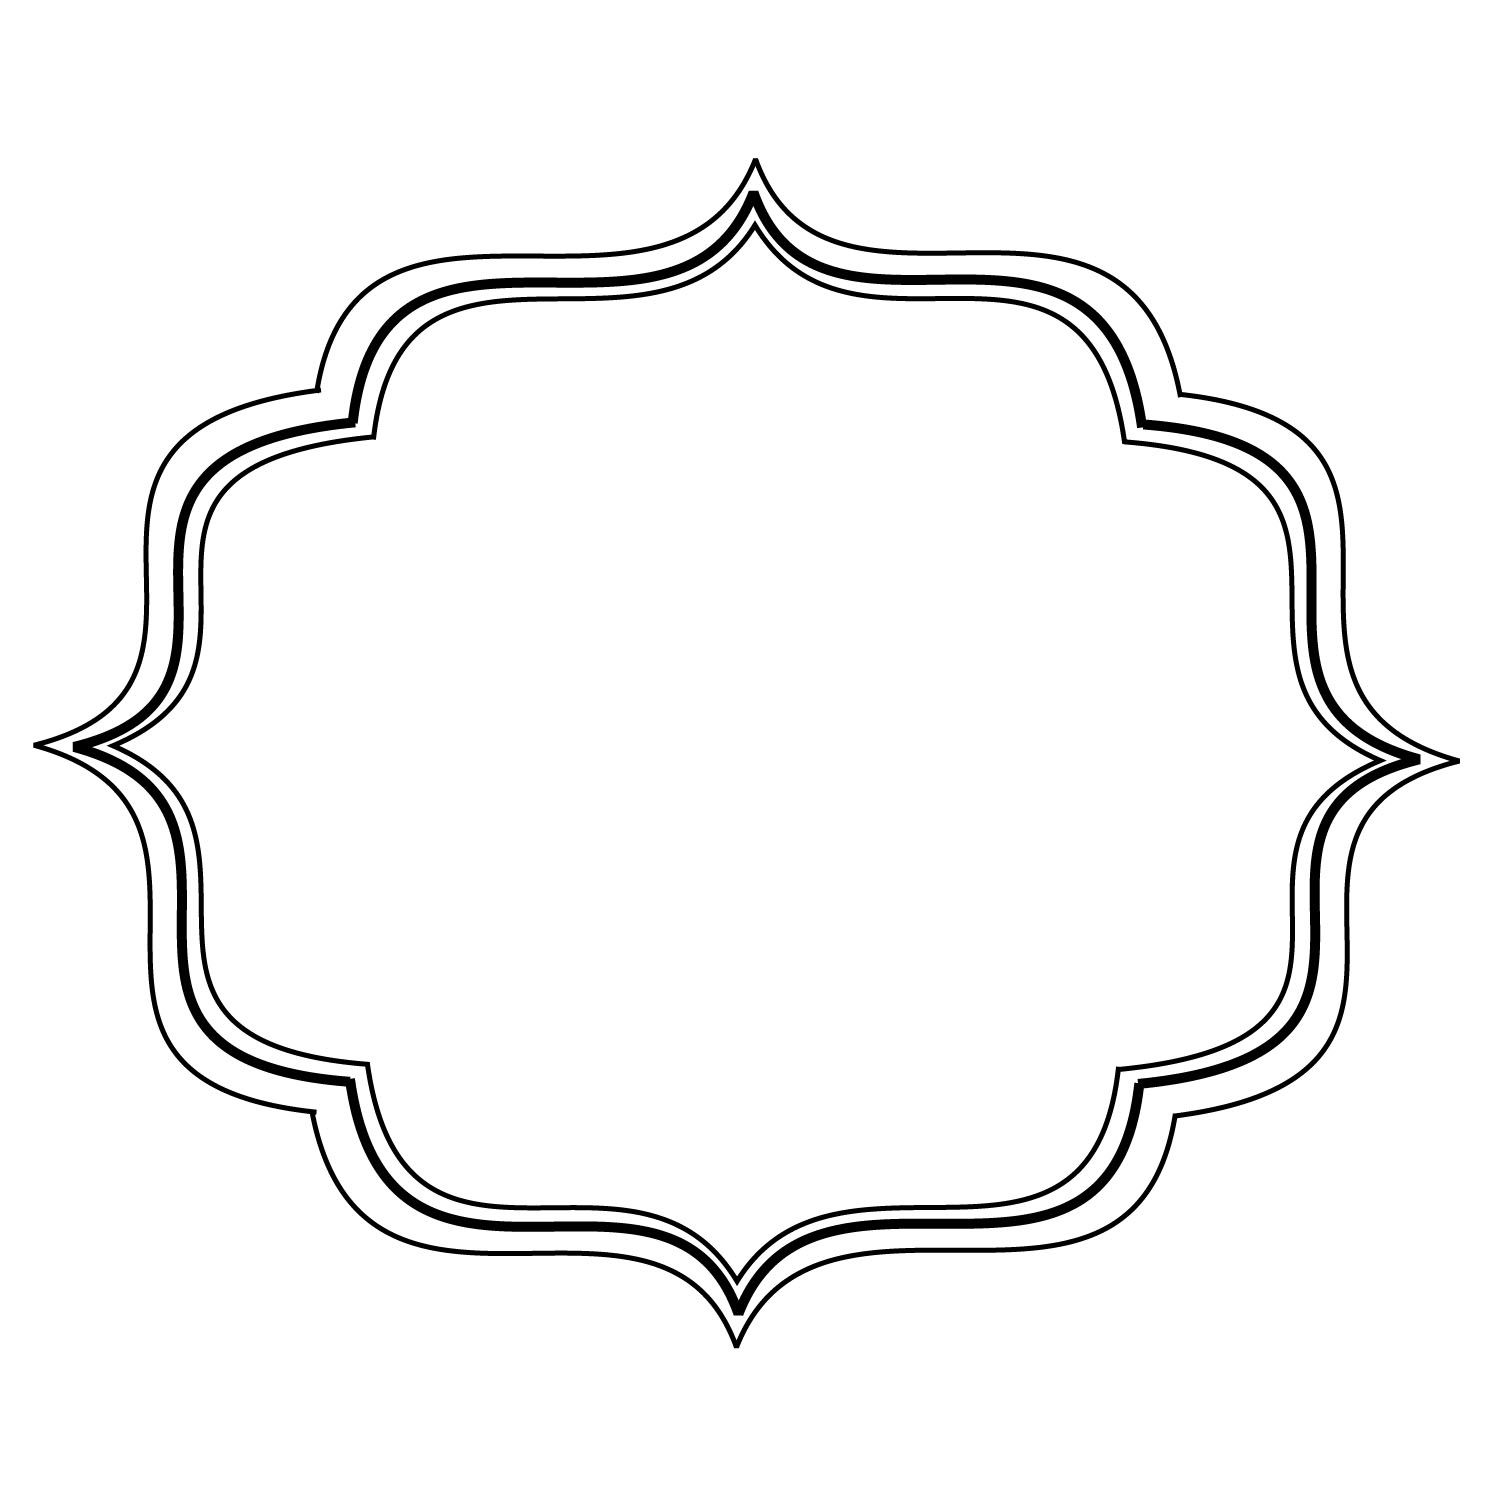 Filigree clipart royal filigree. Simple scroll designs frame